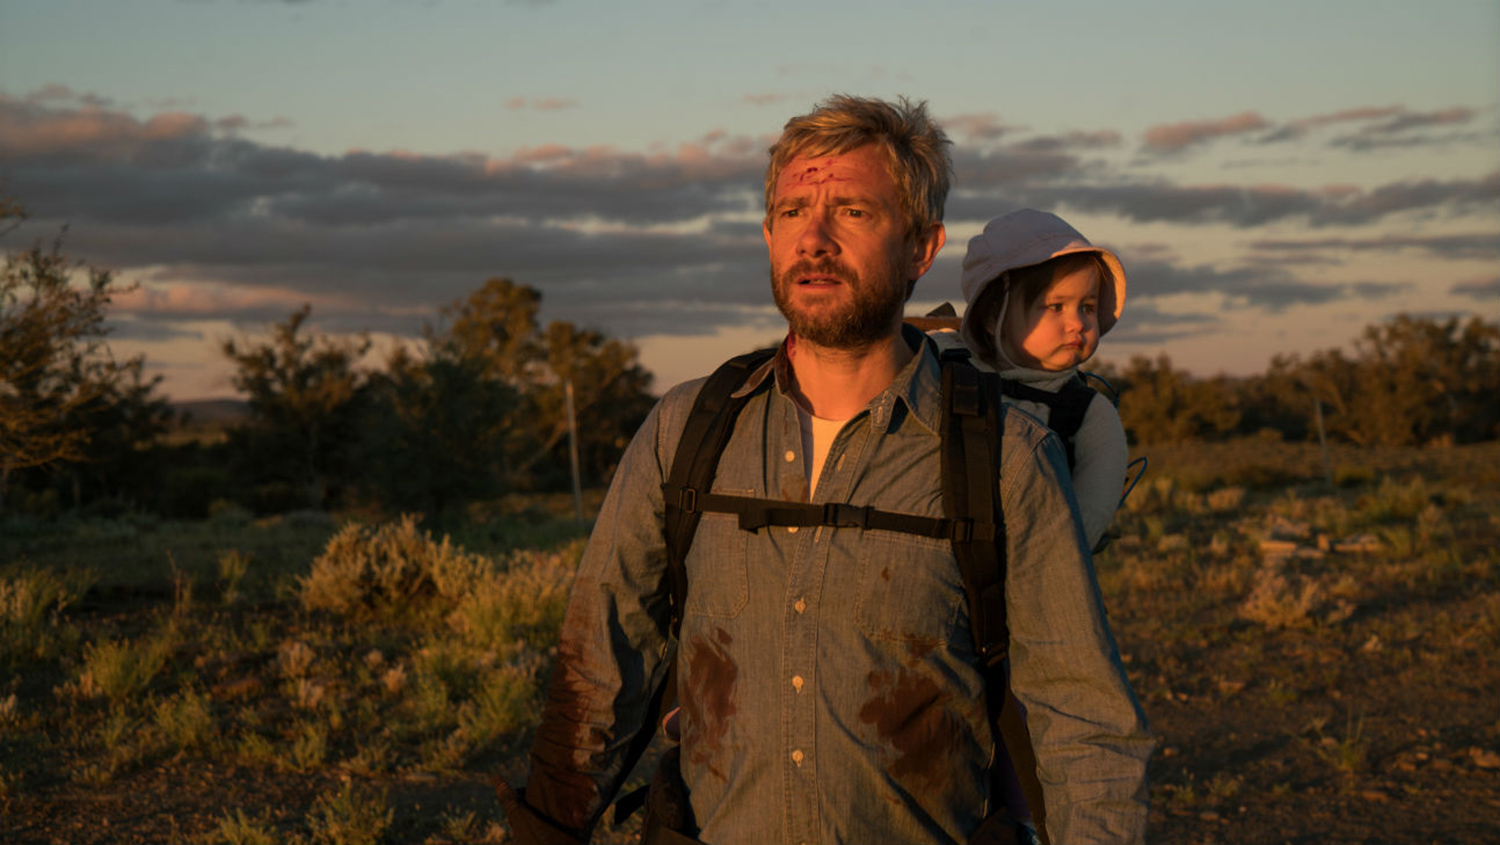 Post-Apocalyptic Movies - Cargo, 2017, father and child